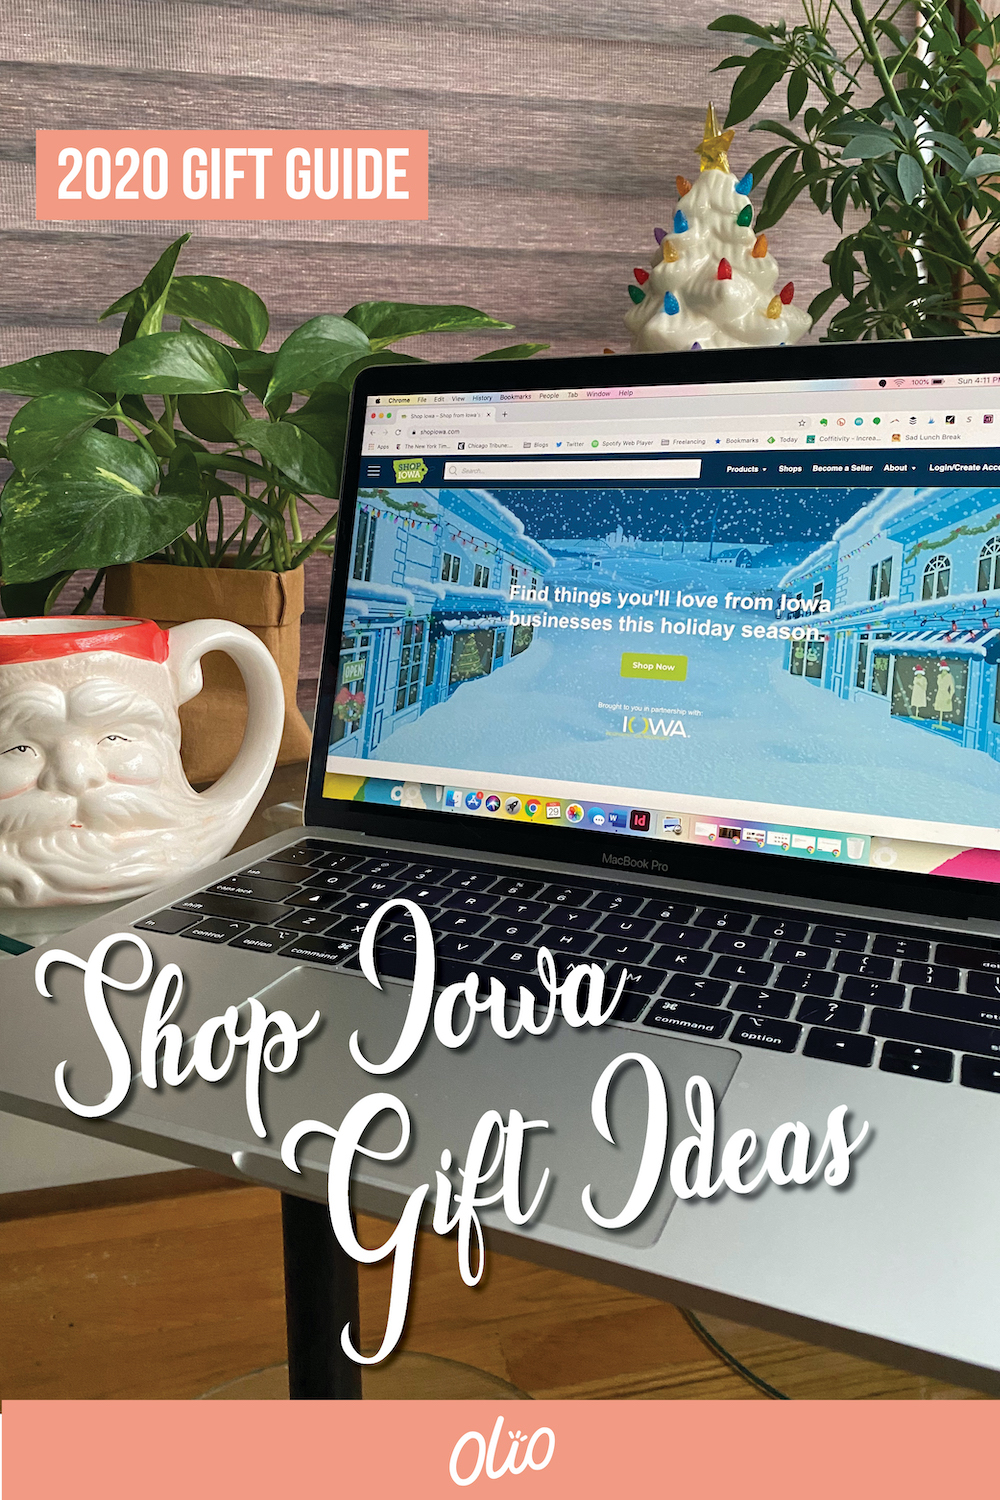 Support Iowa small businesses this holiday season with Shop Iowa! This new online platform from Travel Iowa lets you shop for gifts from businesses around the state in a quick and easy way. Discover gifts that are perfect for everyone on your holiday list! #giftguide #Iowa #TravelIowa #ShopIowa